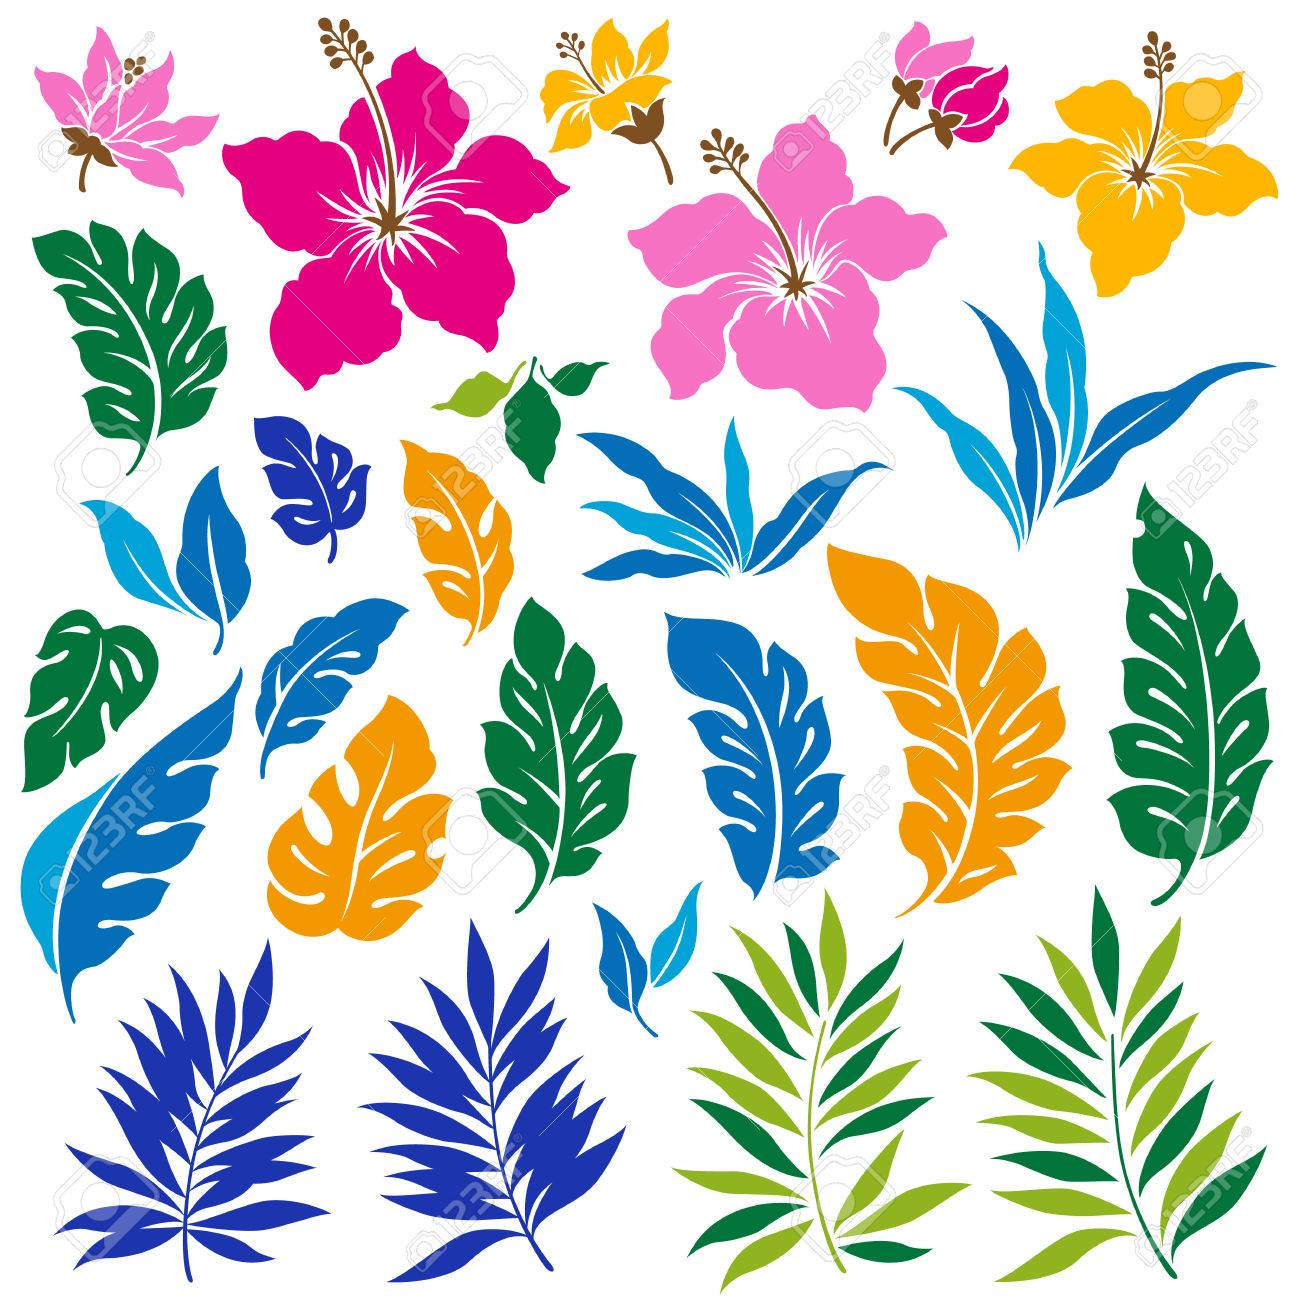 Tropical Flower Illustration Royalty Free Cliparts Vectors And Stock Illustration Image 57175852